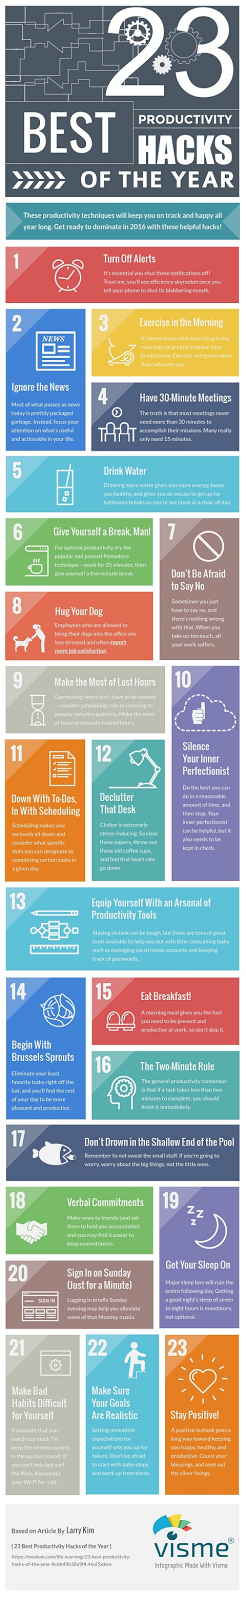 23 Productivity Hacks infographic